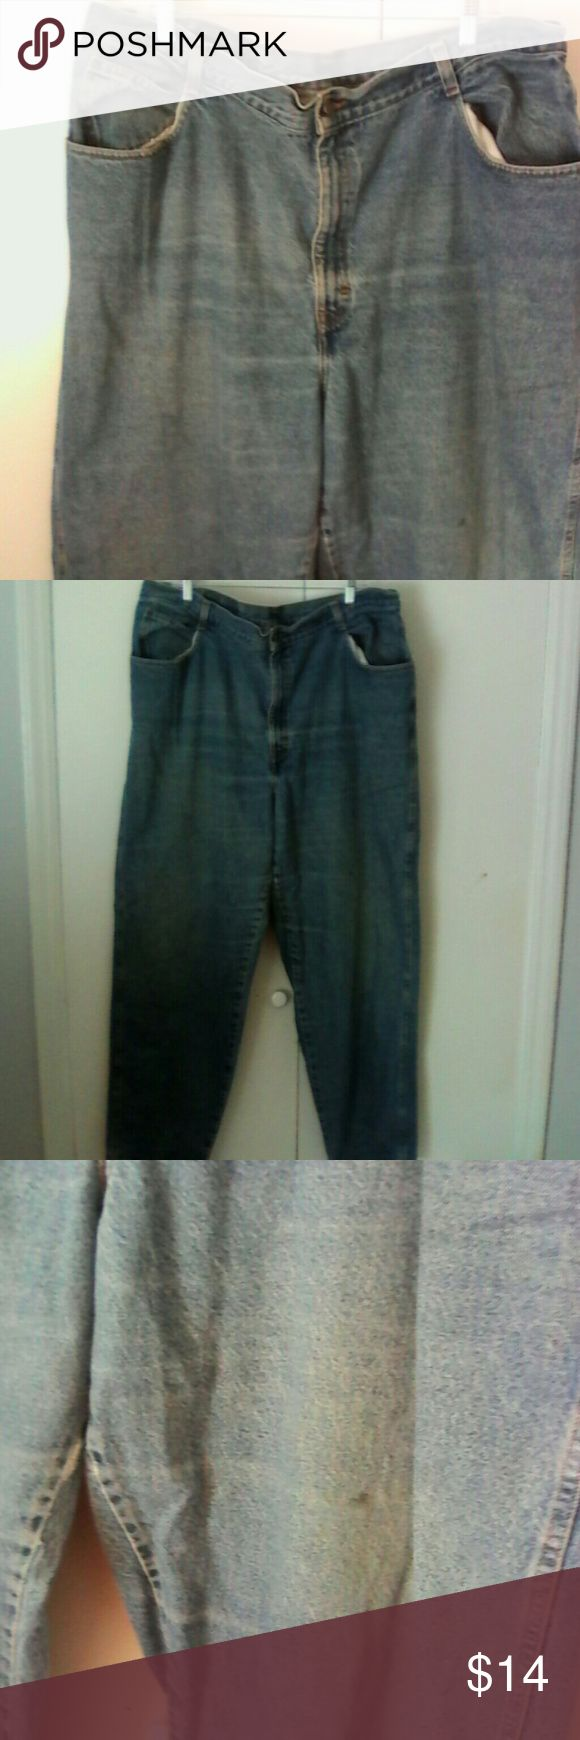 Gitano Woman's Plus Tall Jeans 26W This is a pair of woman's plus size jeans by Gitano in a size 26W Tall 100% cotton Straight leg Light stonewashed blue NOTE one spot on left thigh area as seen in pictures, will not affect wear Otherwise in excellent condition Gitano Jeans Straight Leg